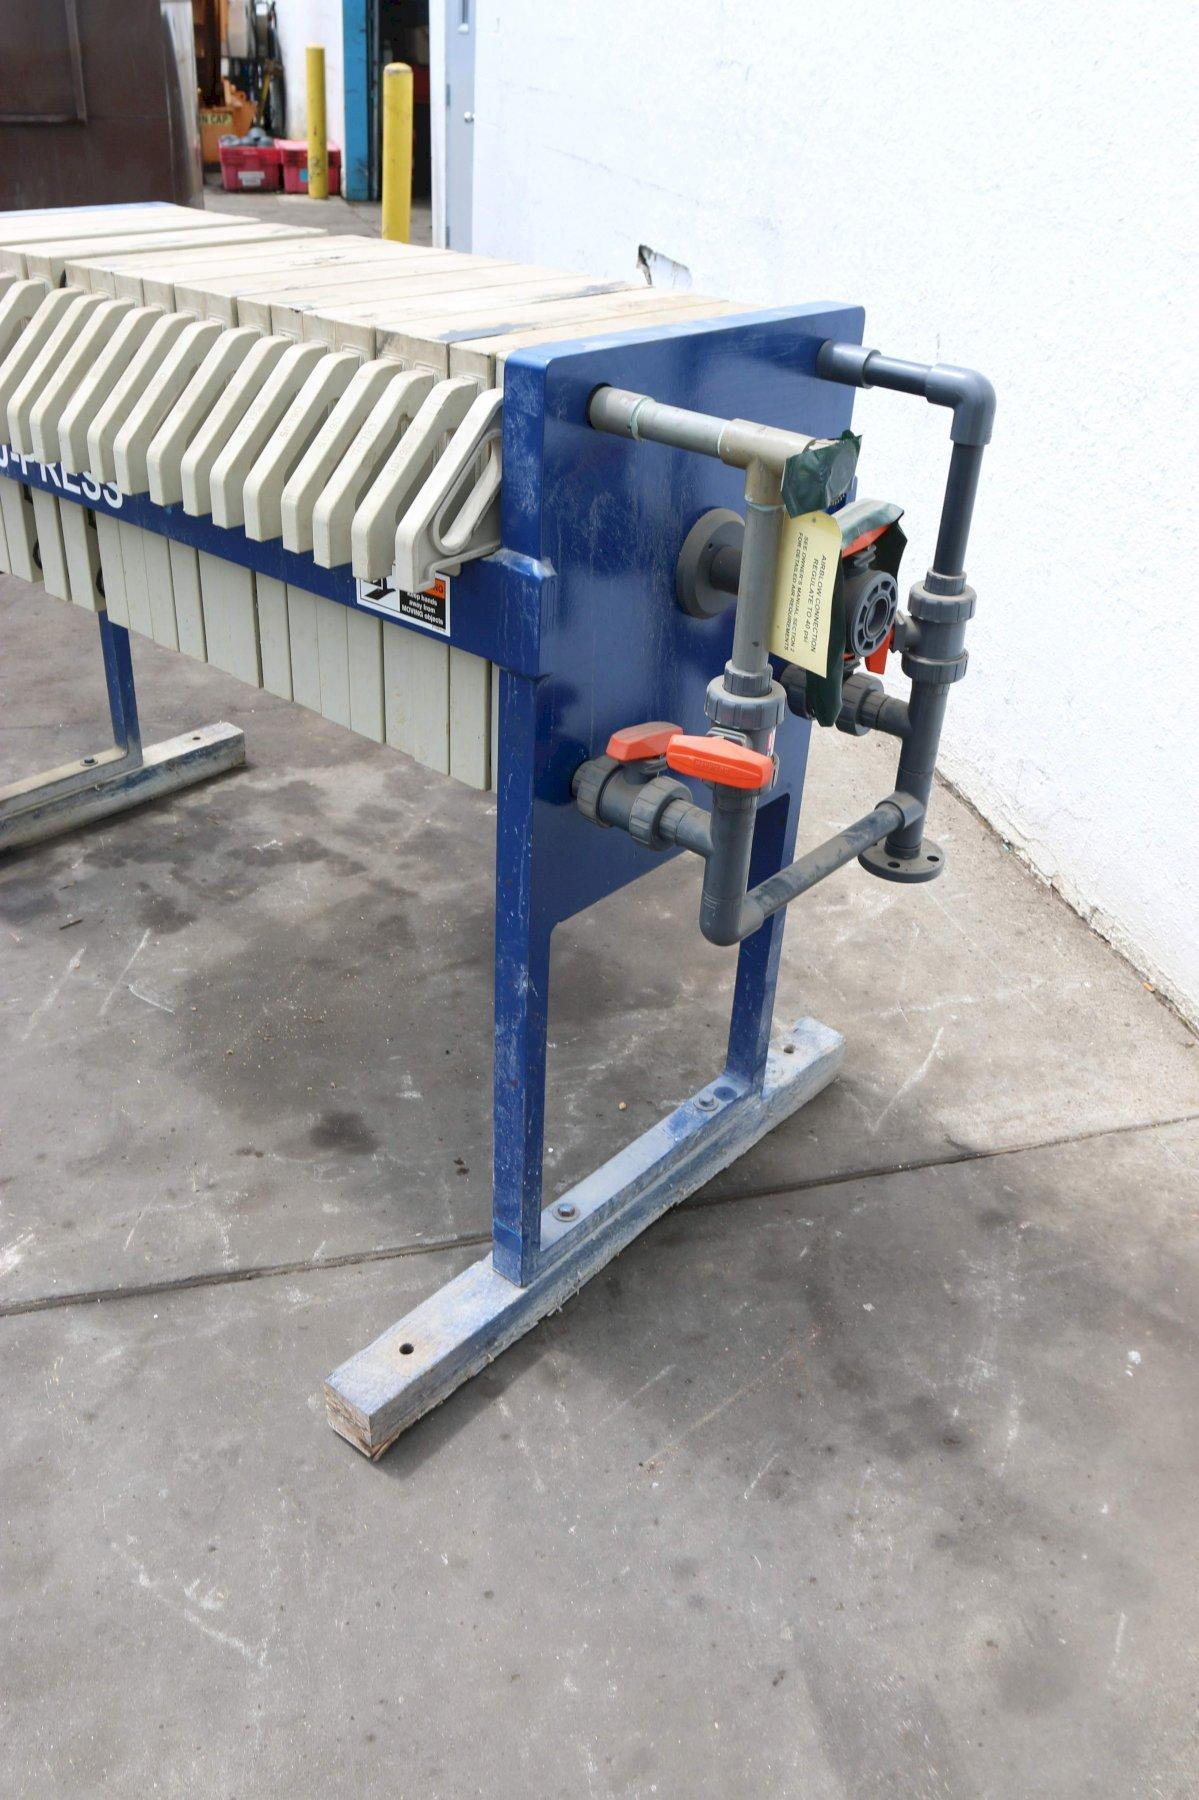 20 PLATE SIEMENS DEWATERING SYSTEMS FILTER PRESS: STOCK #70474